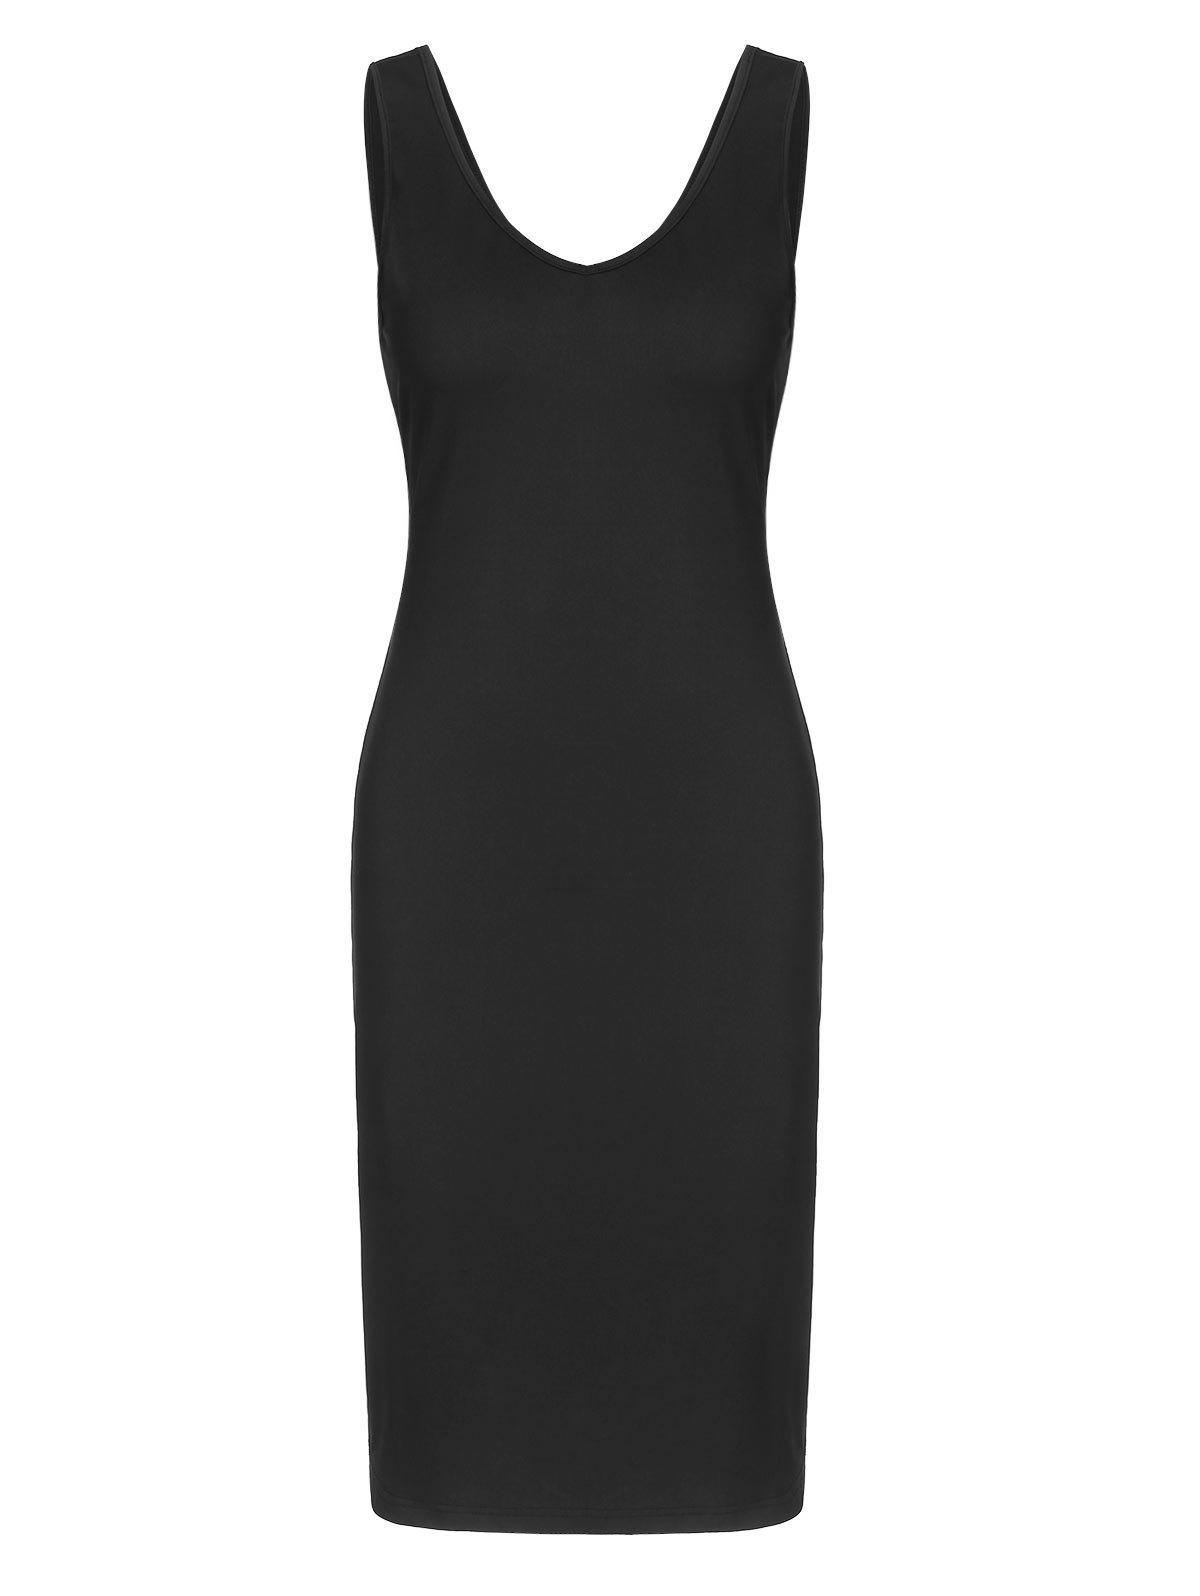 Sleeveless Crossover Cut Out Sheath Dress - BLACK 2XL